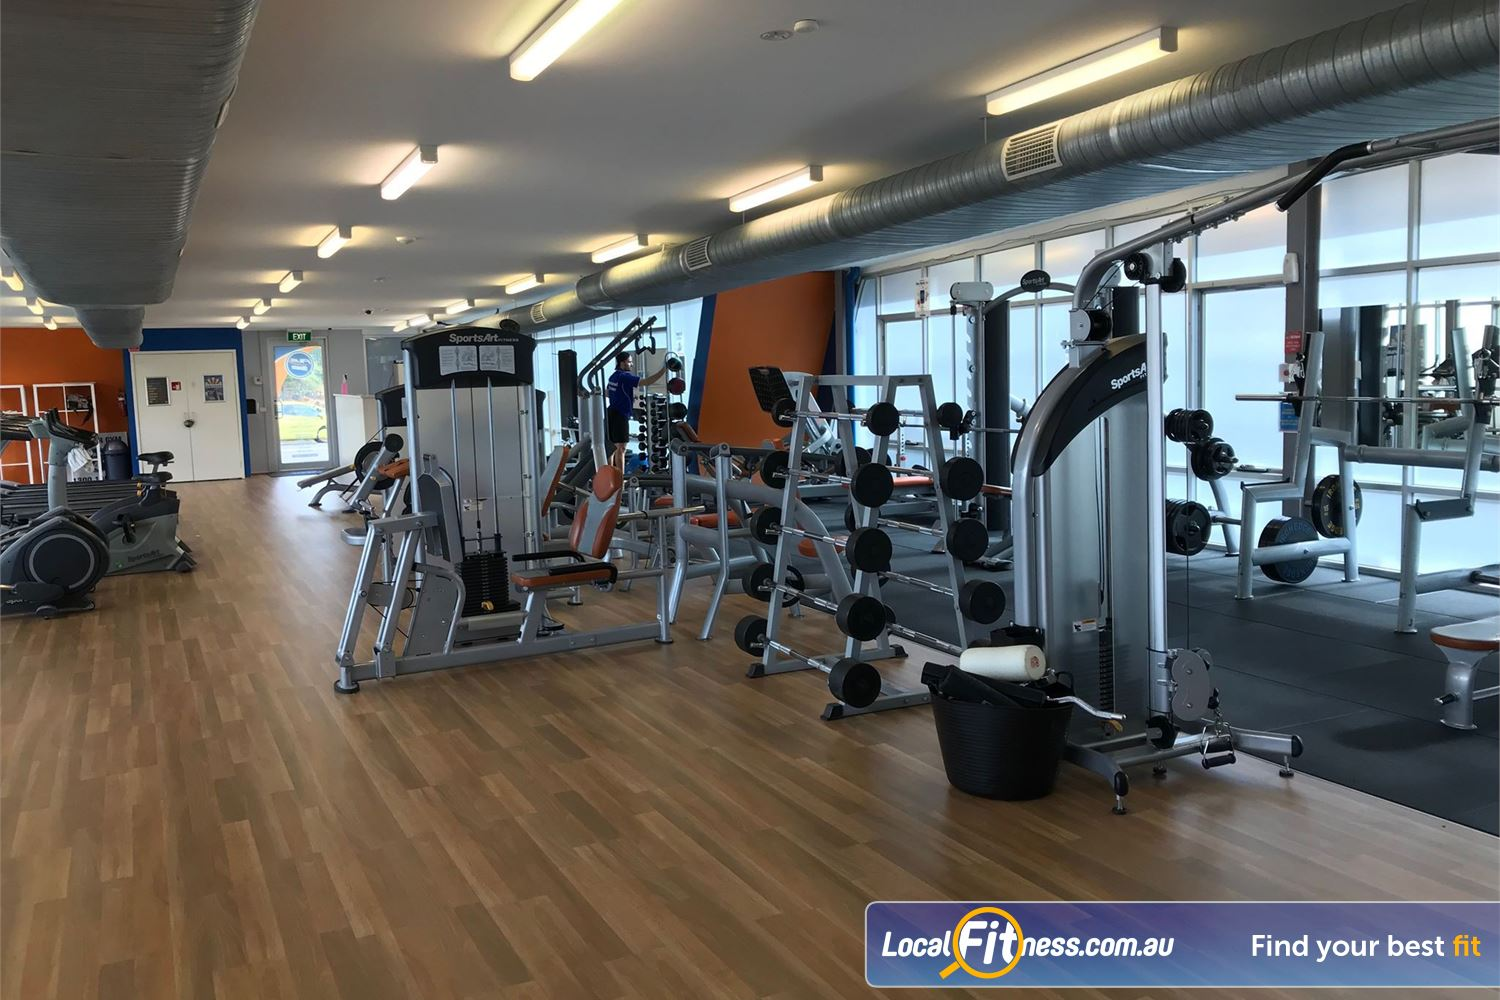 Plus Fitness 24/7 Oakleigh Welcome to Plus Fitness 24 hours gym Oakleigh - Your Local Gym.